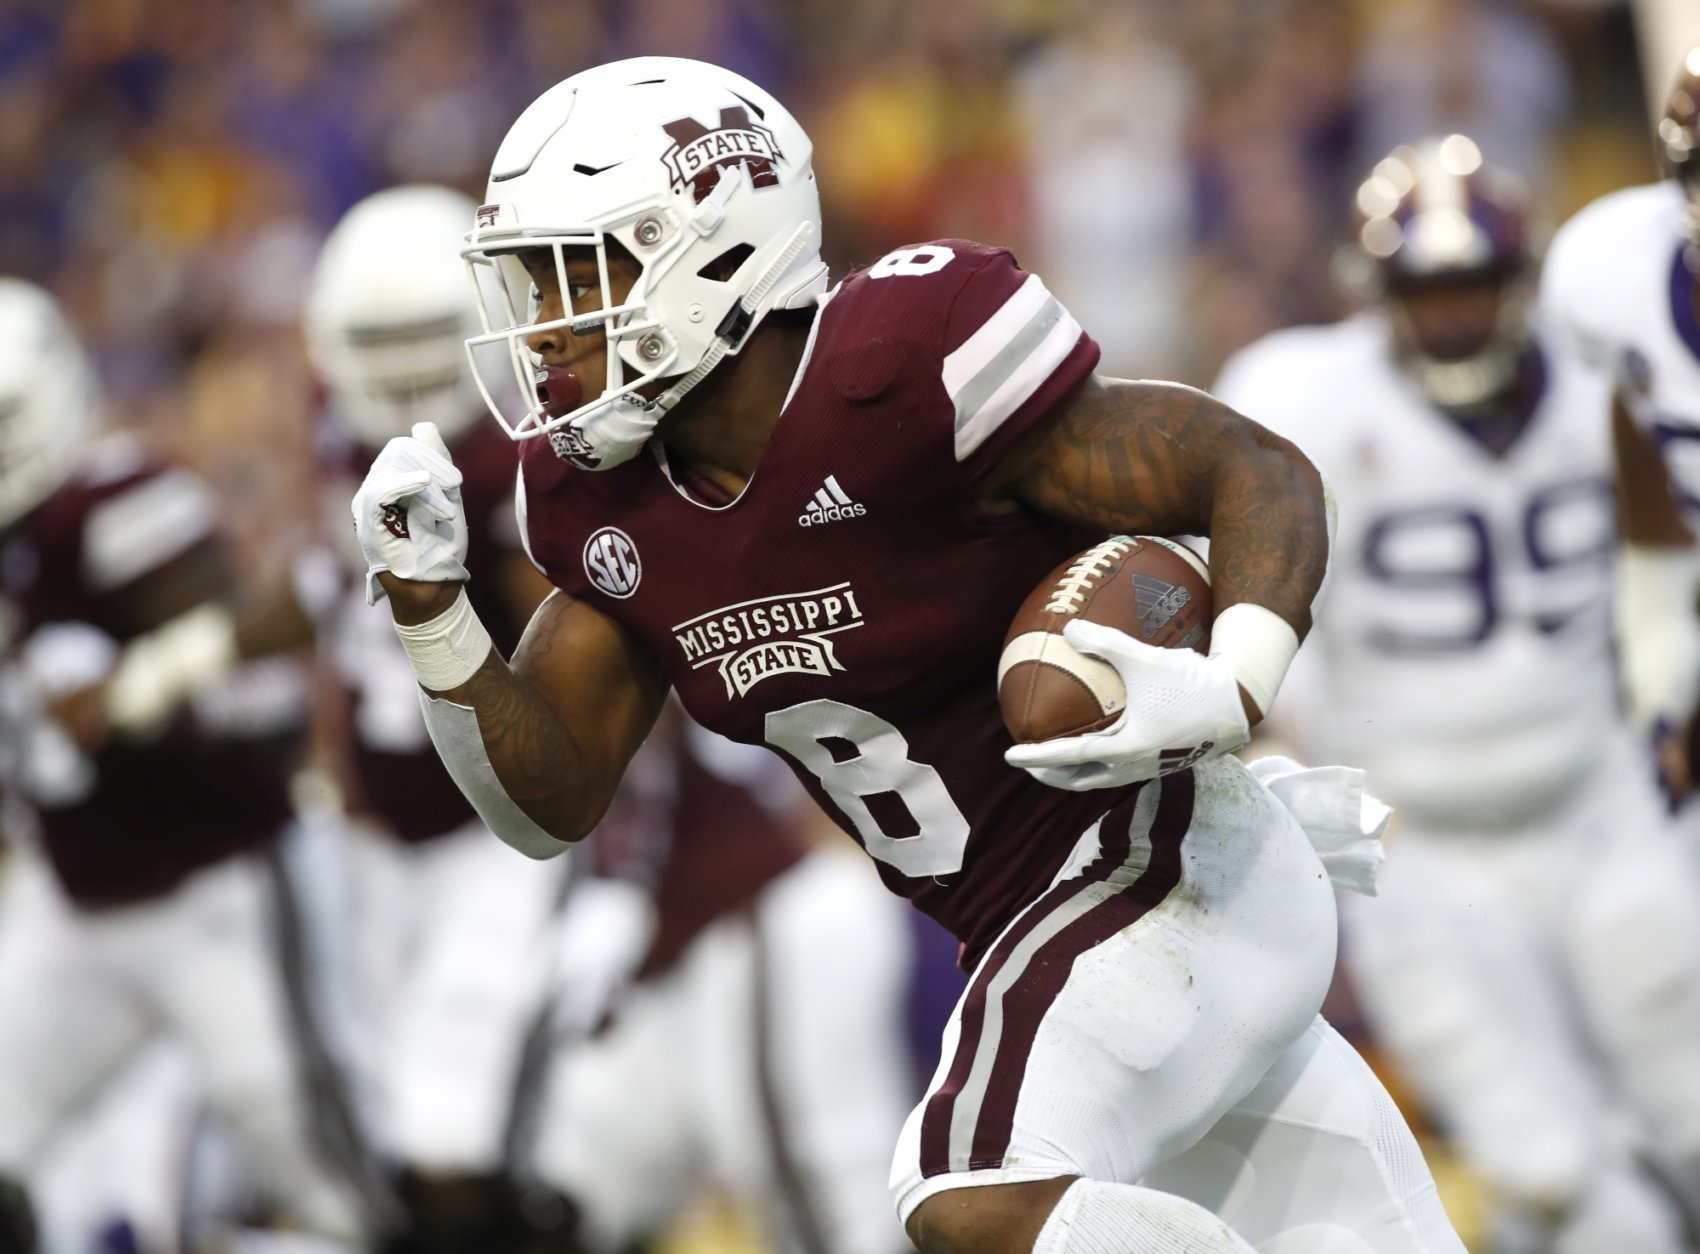 Mississippi State wide receiver Jamal Couch (6) runs the ball during an NCAA college football game against LSU in Baton Rouge, La., Saturday, Oct. 20, 2018. (AP Photo/Tyler Kaufman)